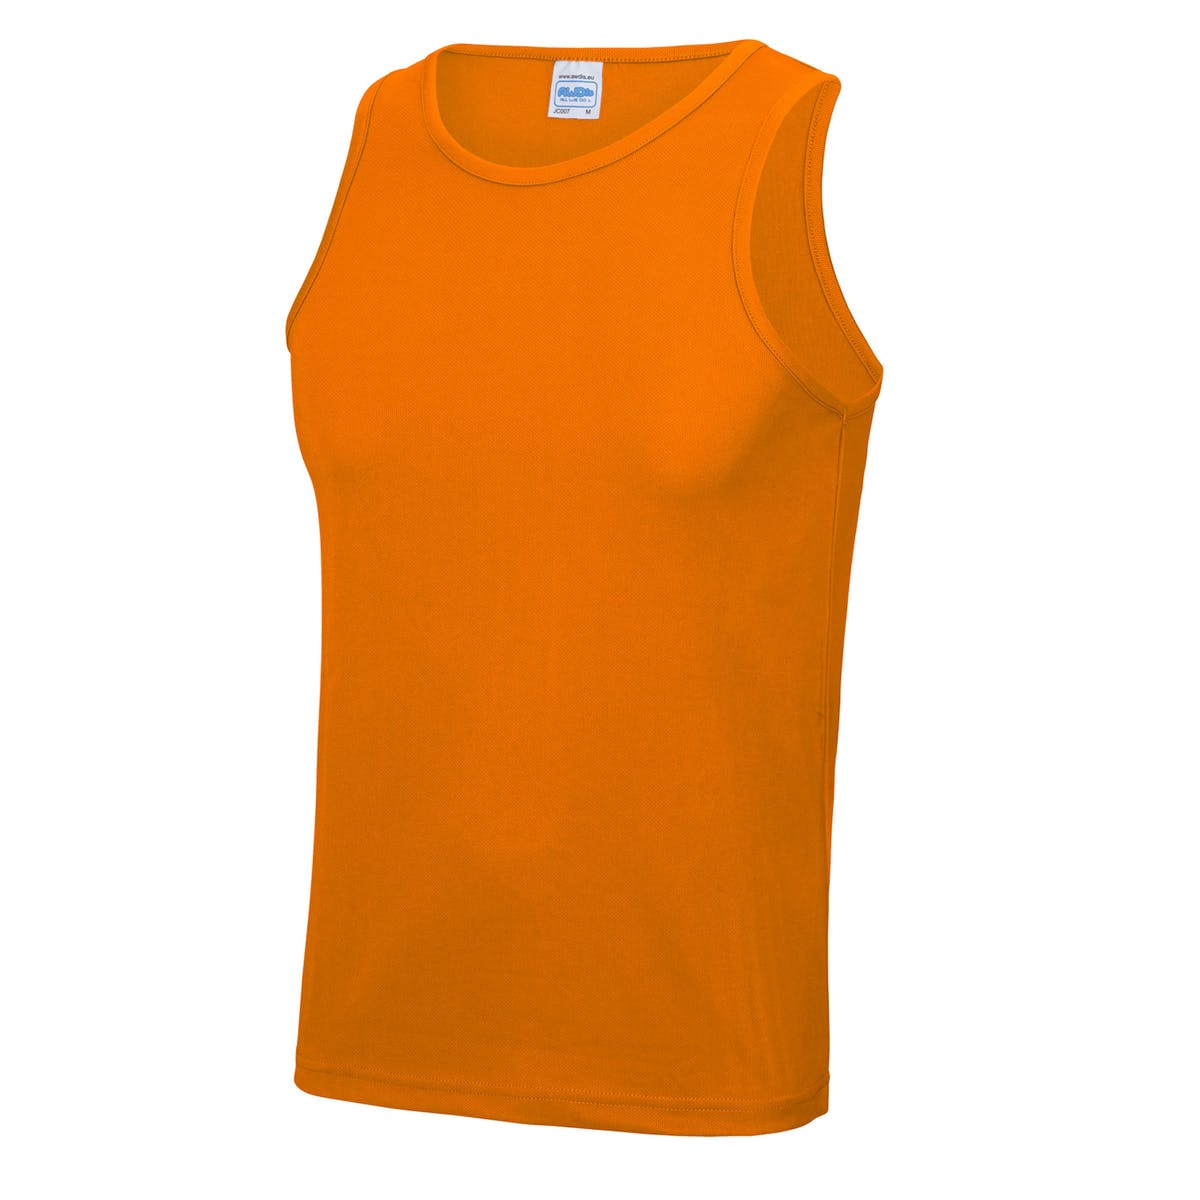 orange crush sports vest